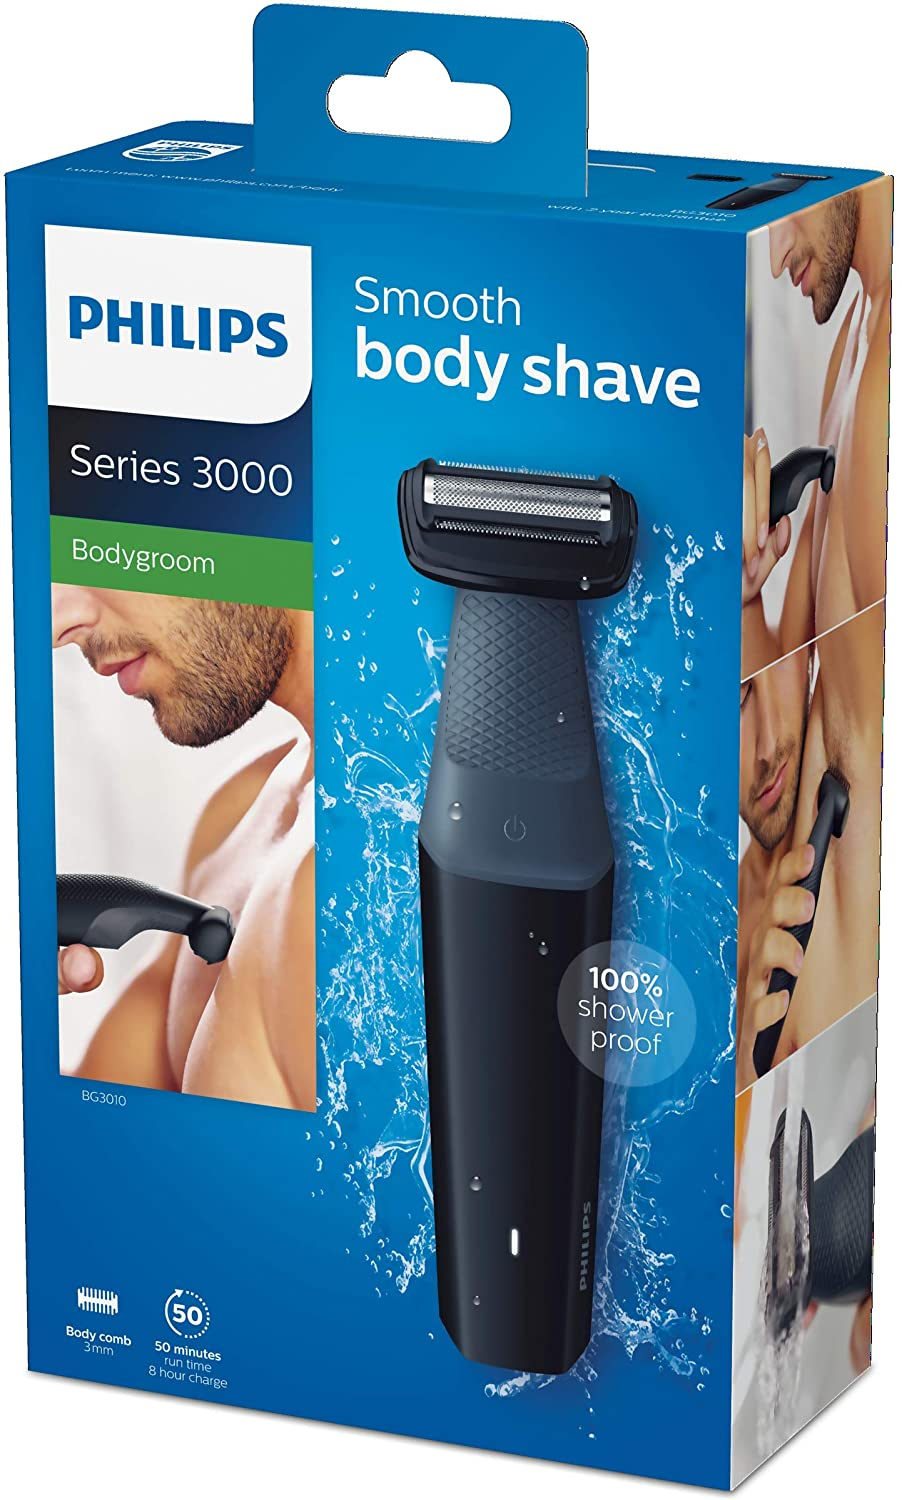 Philips Bodygroom Series 3000 Showerproof Body Groomer/Trimmer & Skin Friendly Electric Shaver with 50 mins Cordless Use, Black enlarge